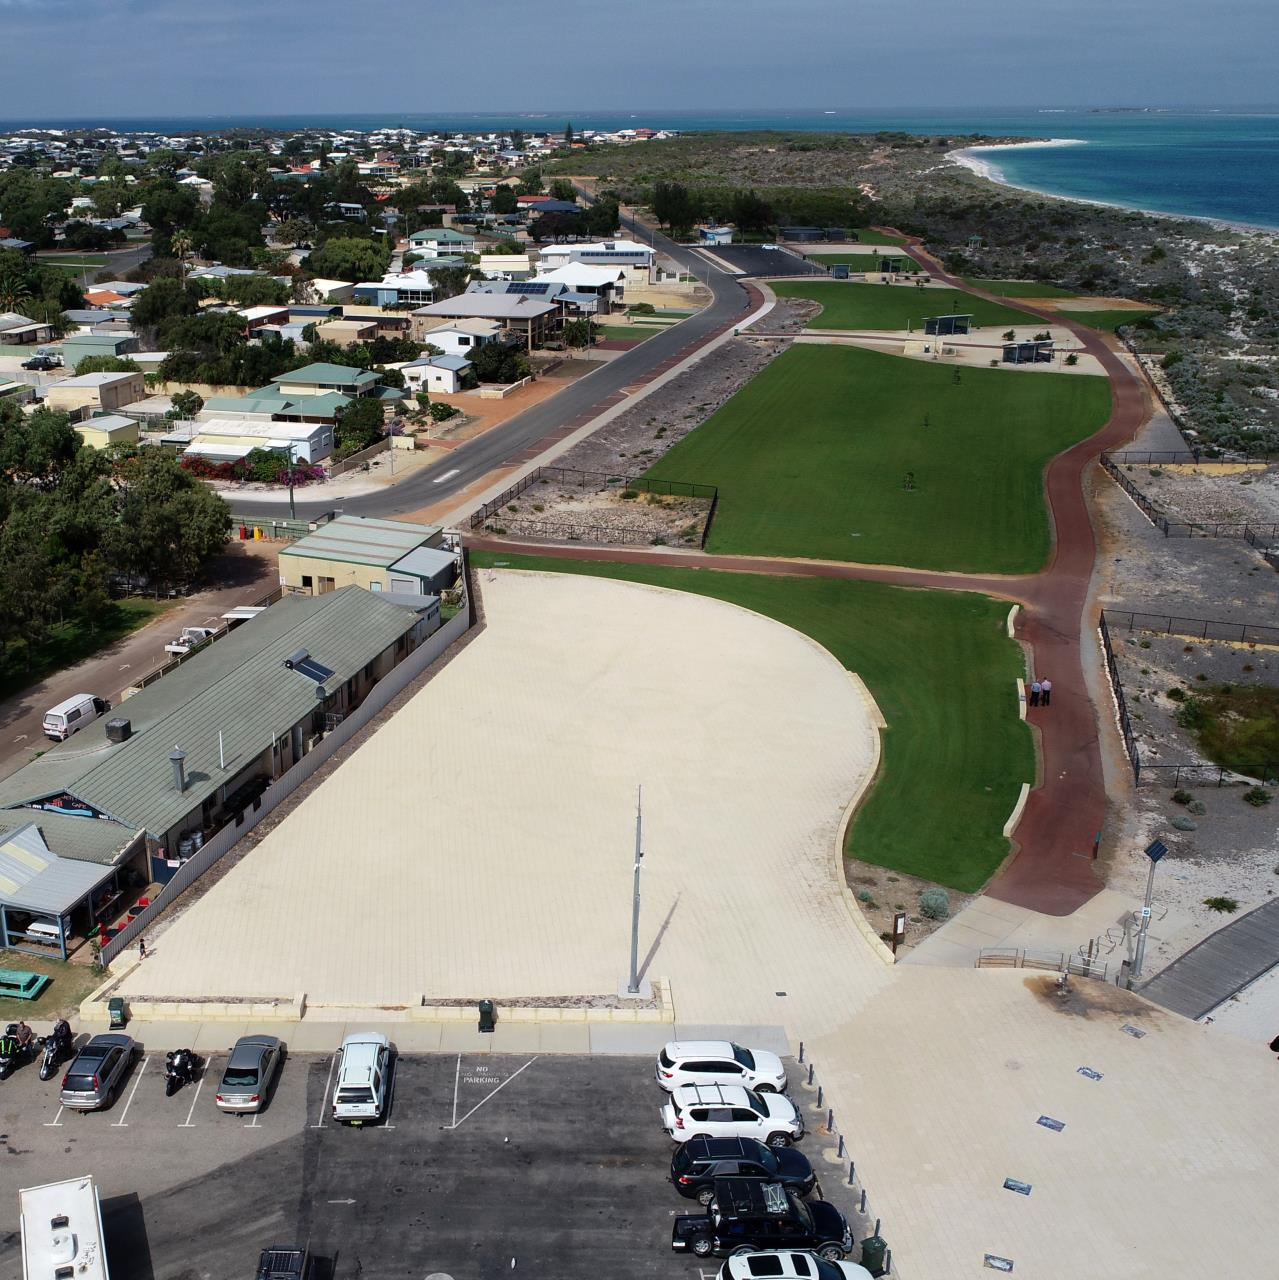 REQUEST FOR PROPOSALS FOR JURIEN BAY FORESHORE COMMERCIAL DEVELOPMENT